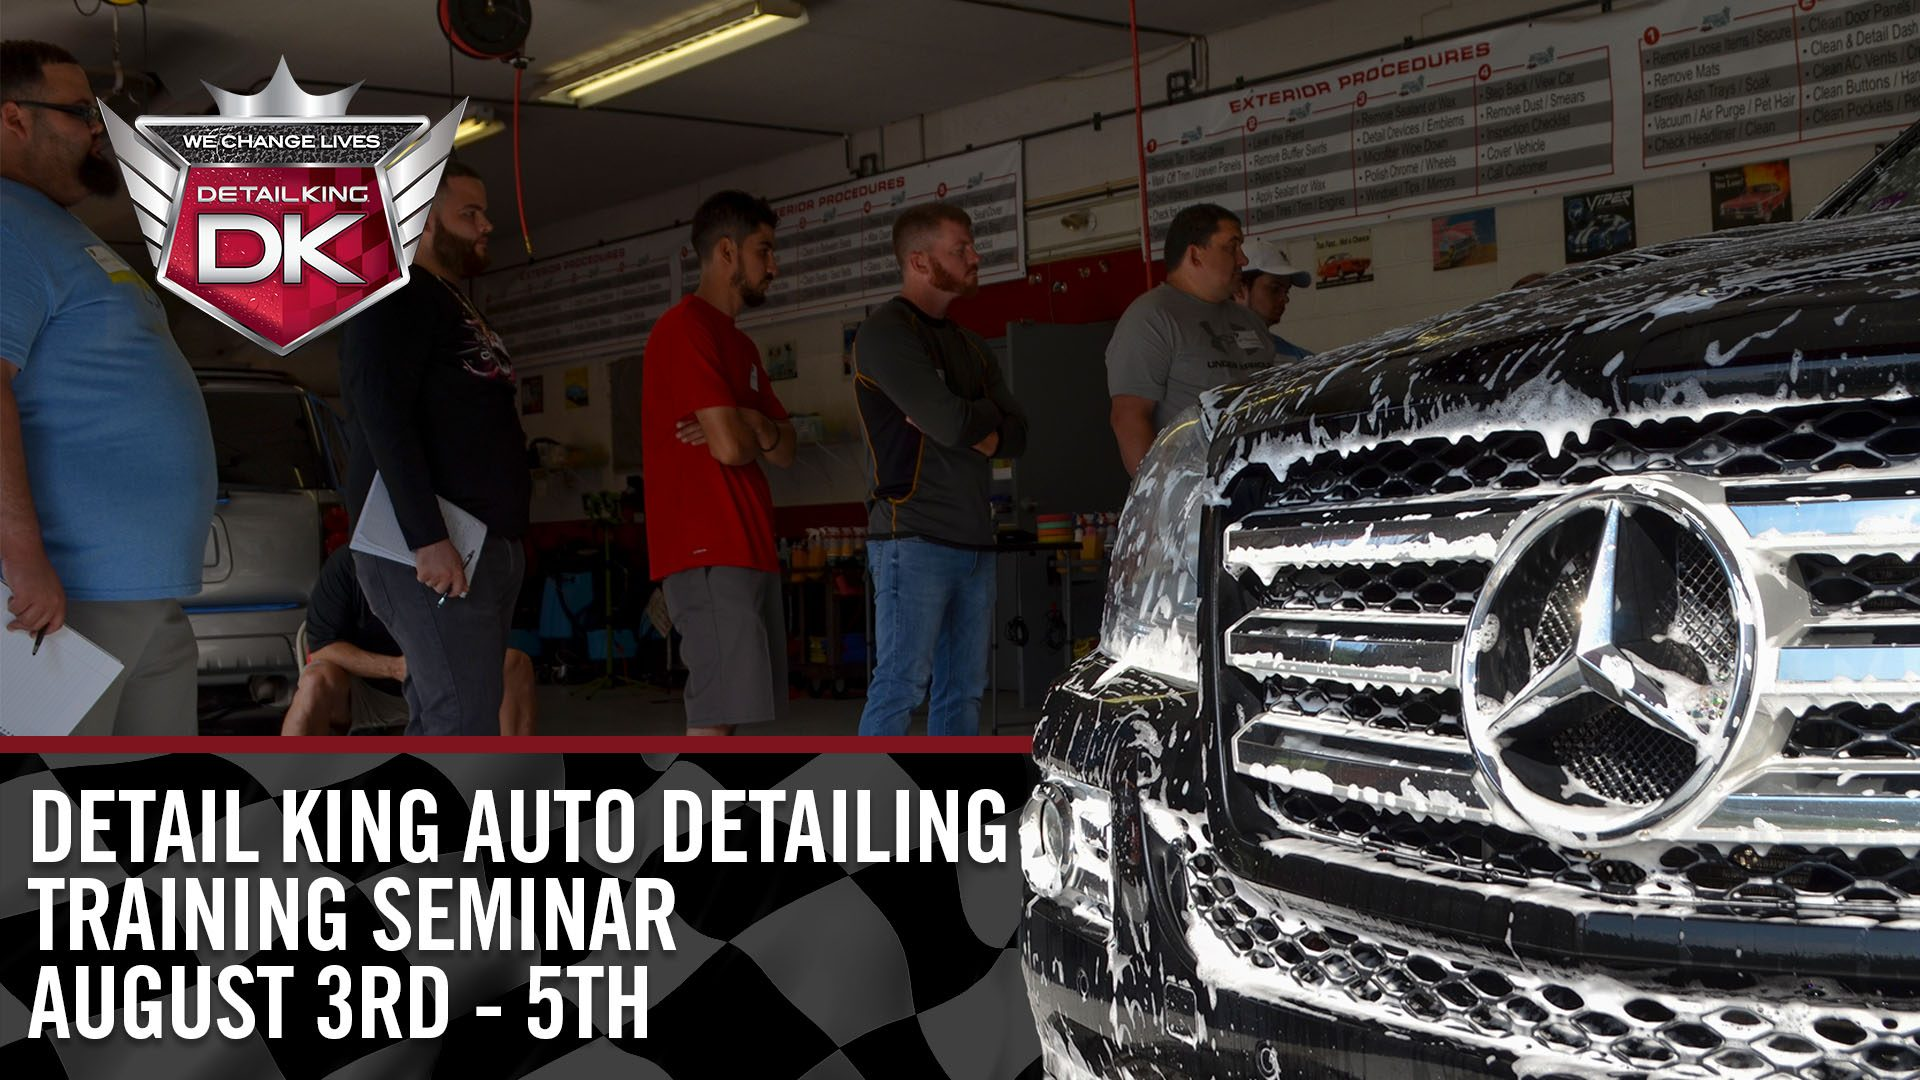 August 3rd – 5th 2018 Craftsman Auto Detailing Training Seminar